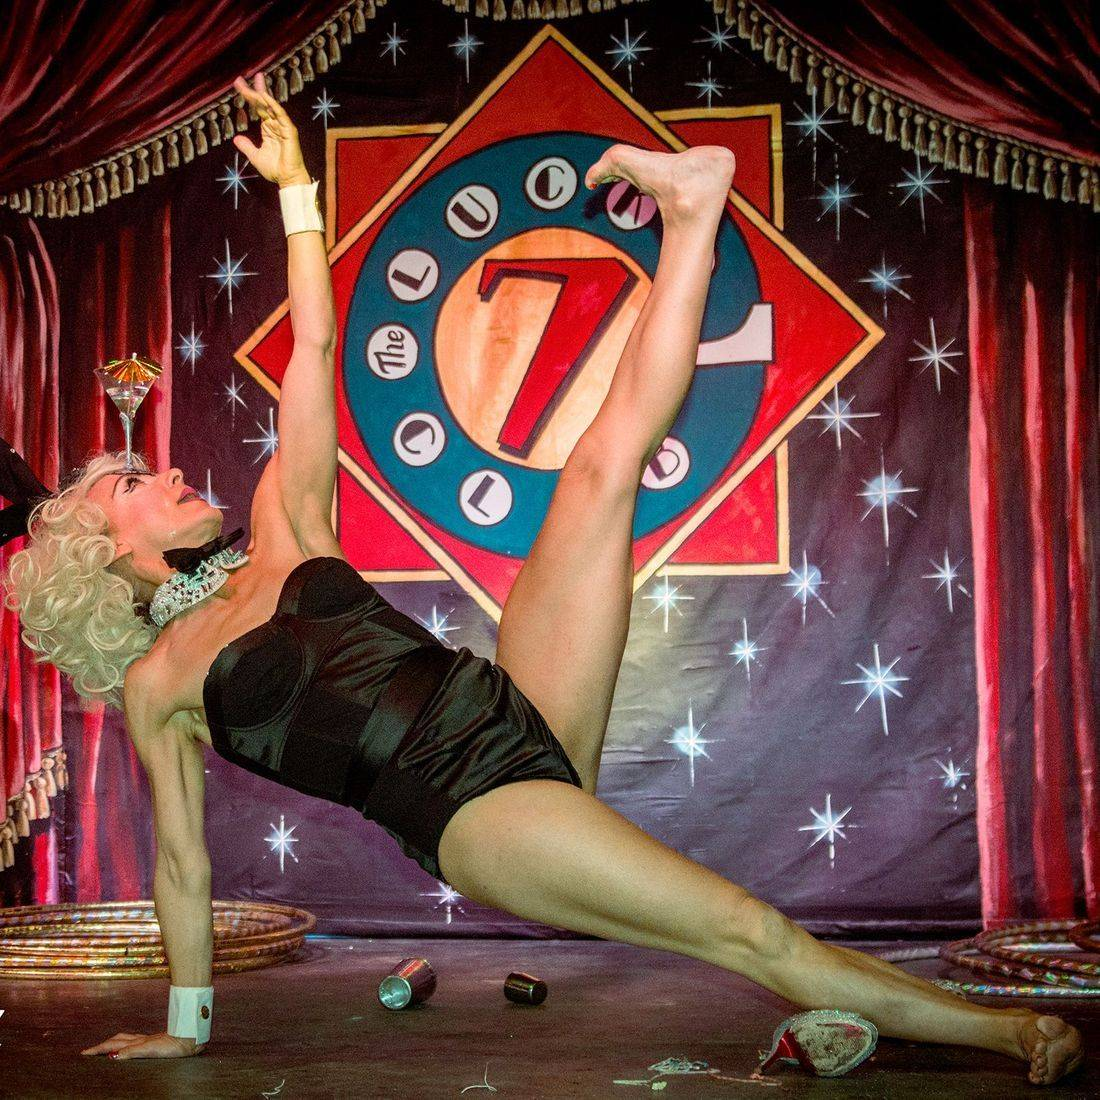 Abigail Collins, Burlesque, Torquay, Devon, Kinky & Quirky, The Lucky 7 Club, Paignton, Speakeasy